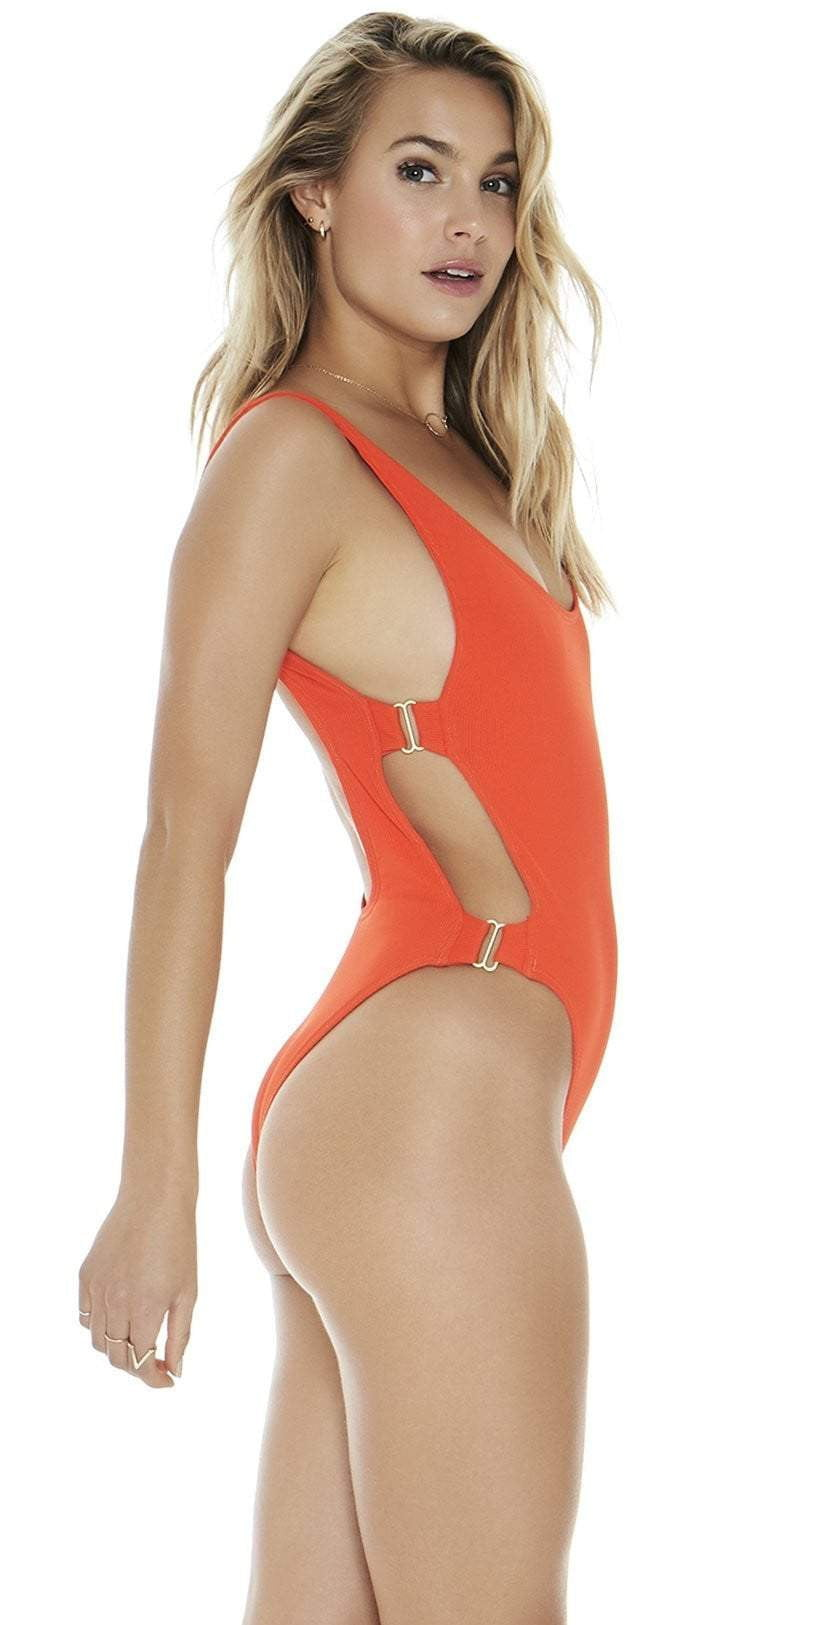 L Space Mayra One-Piece in Poppy RHMYMC18-POP side view of suit on model